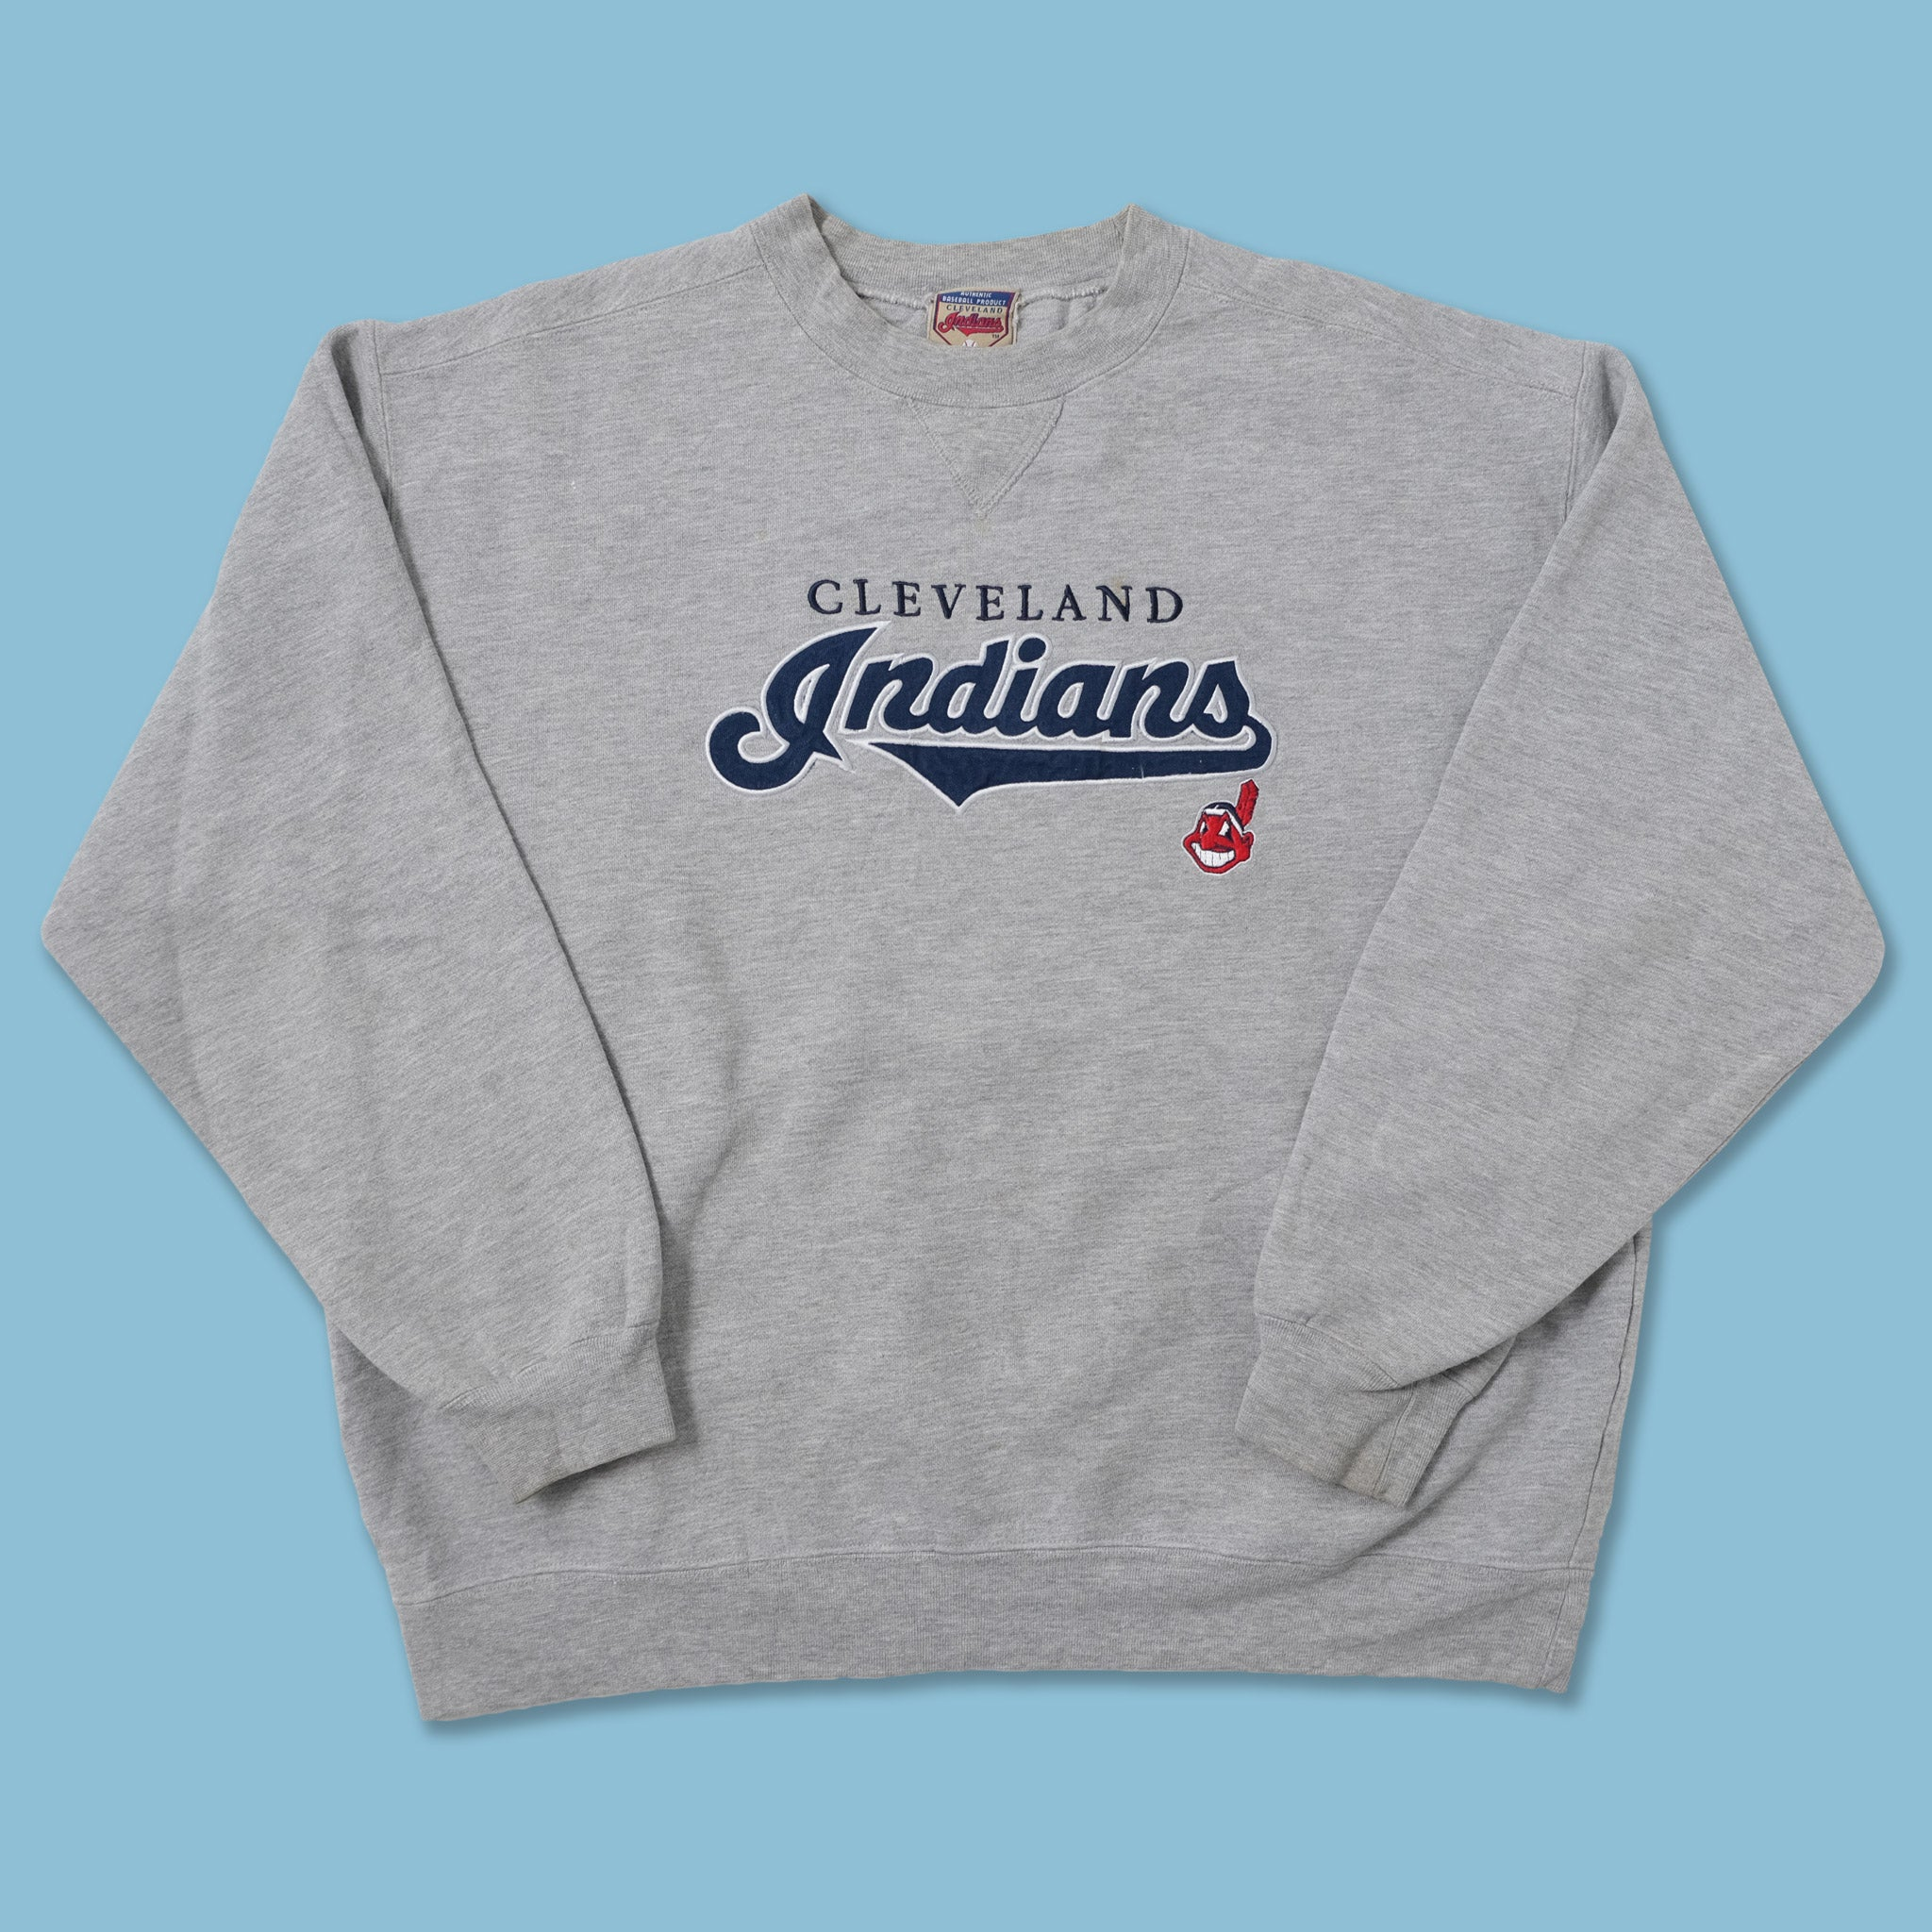 Vintage Cleveland Indians Sweater Large